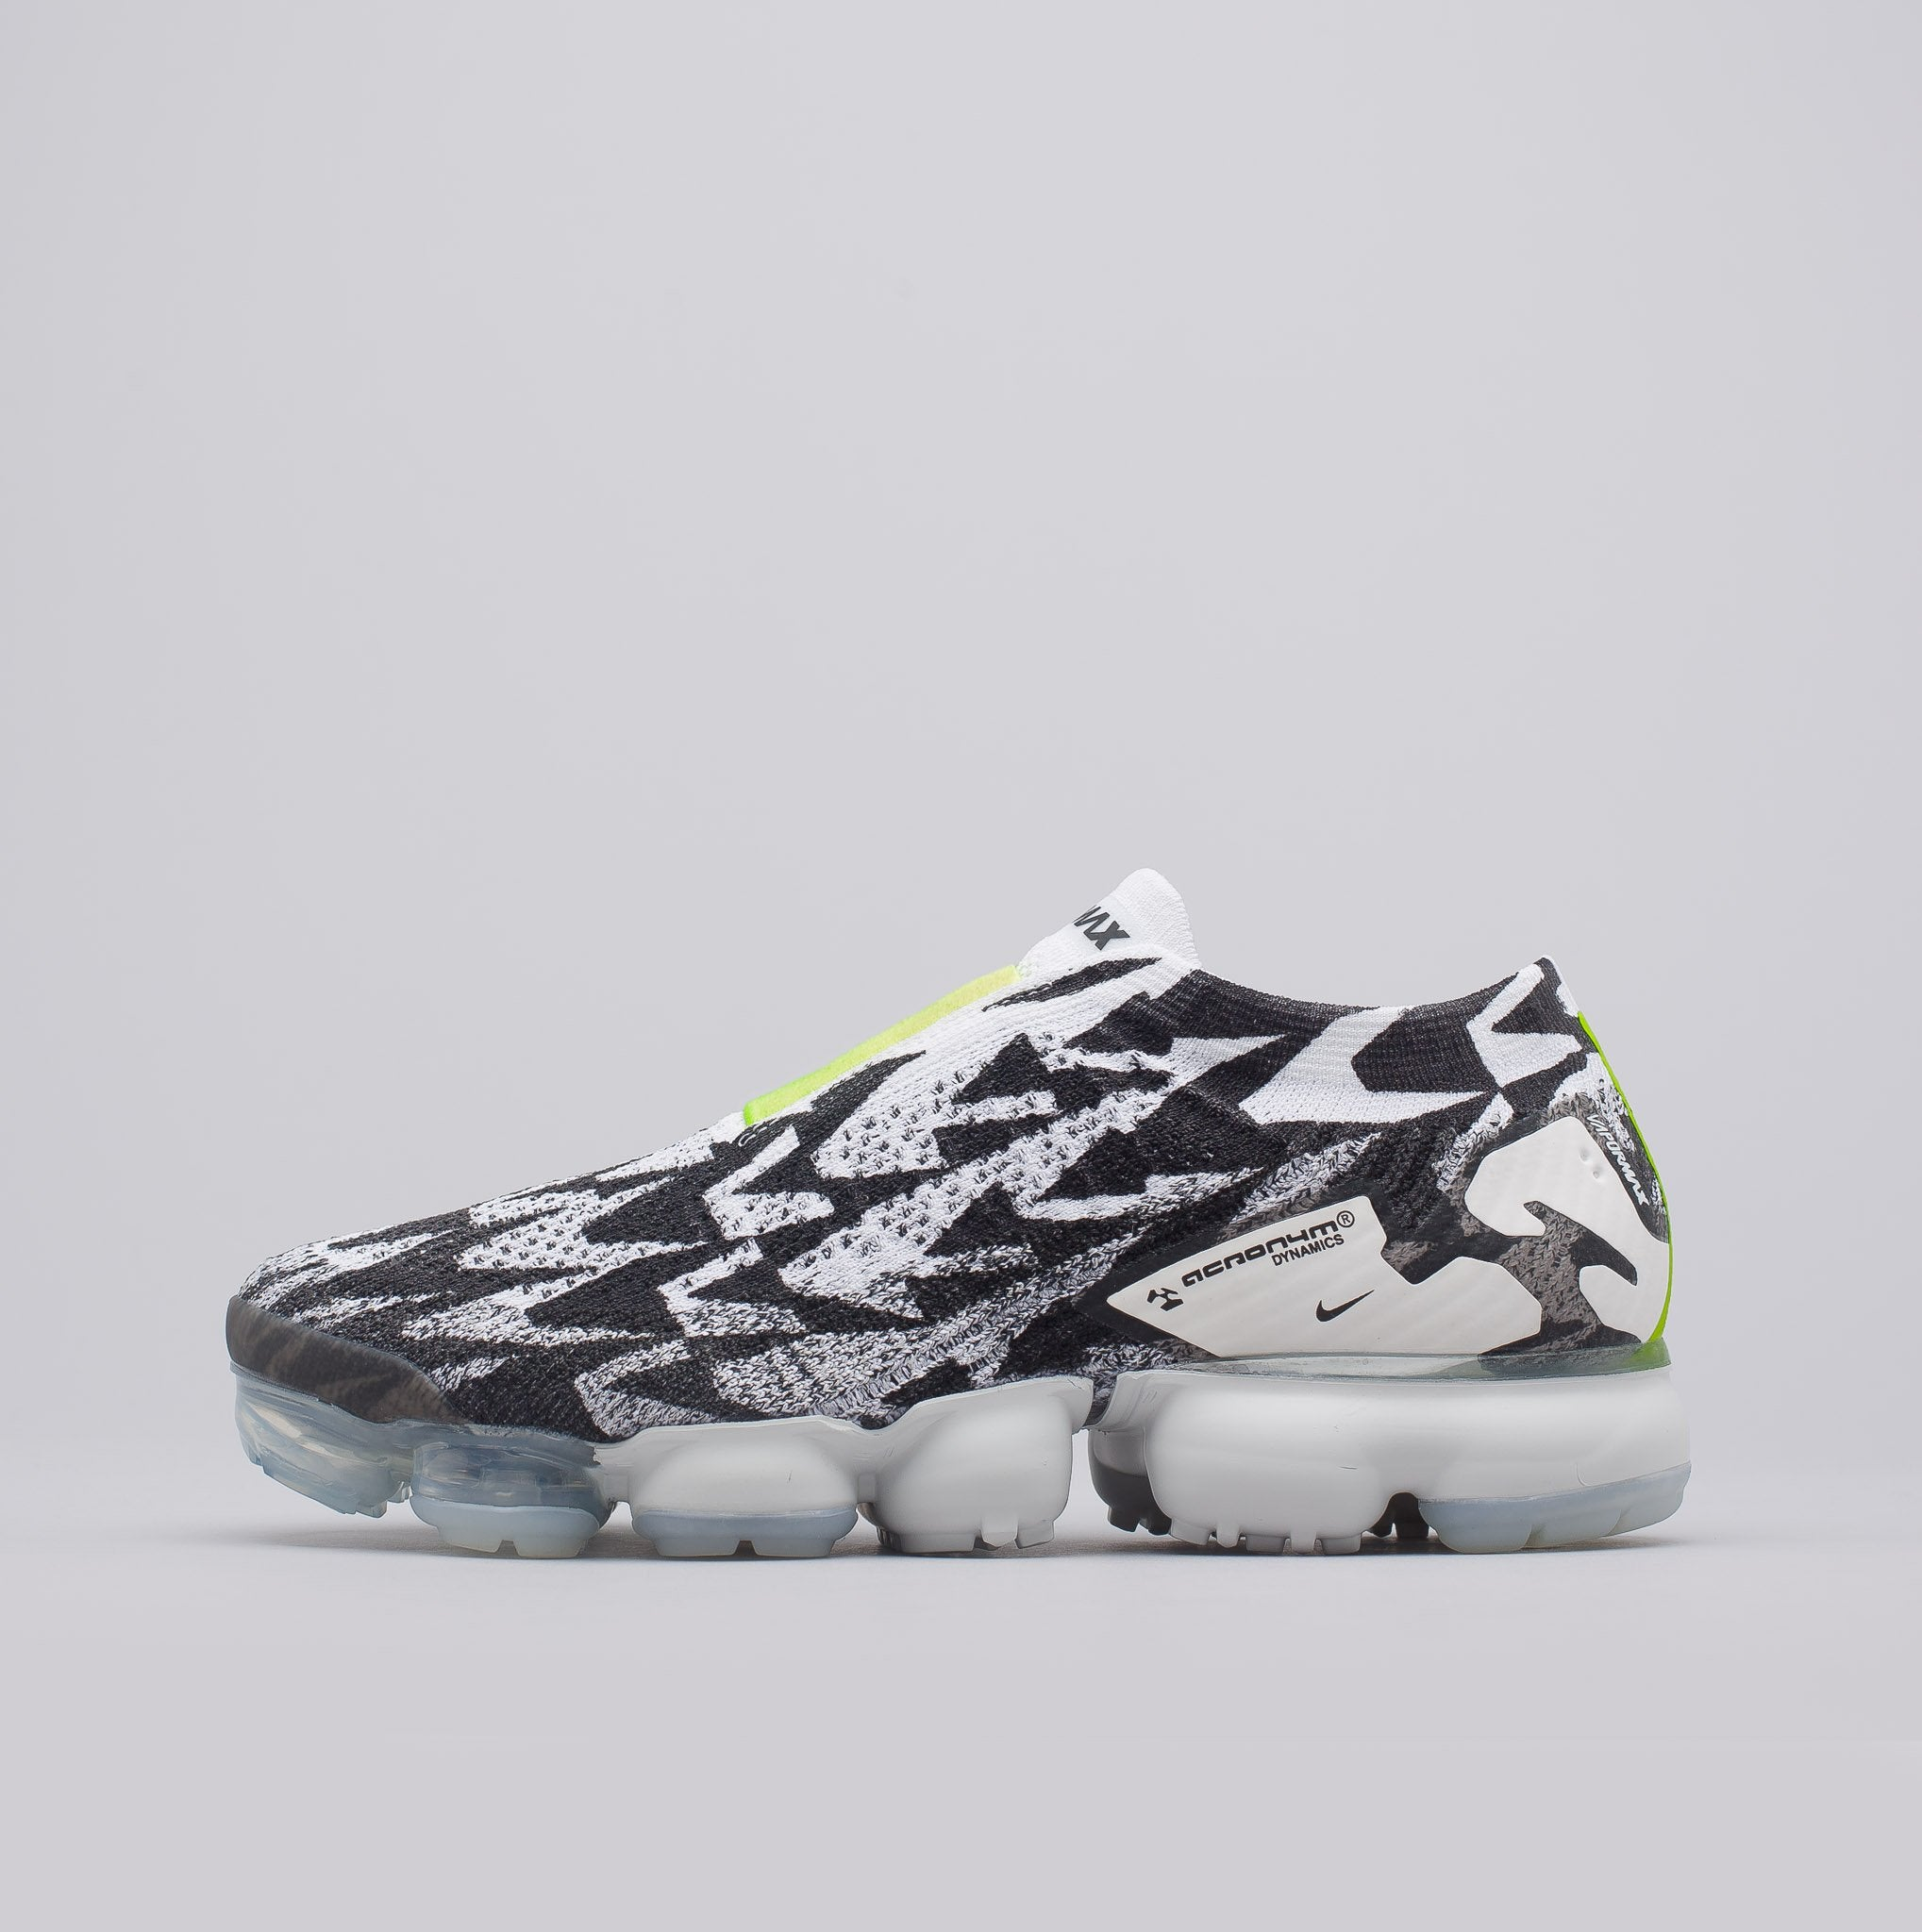 promo code 98ca3 945b2 Acronym Air Vapormax FK Moc 2 in Light BoneVolt Green - PZOZO